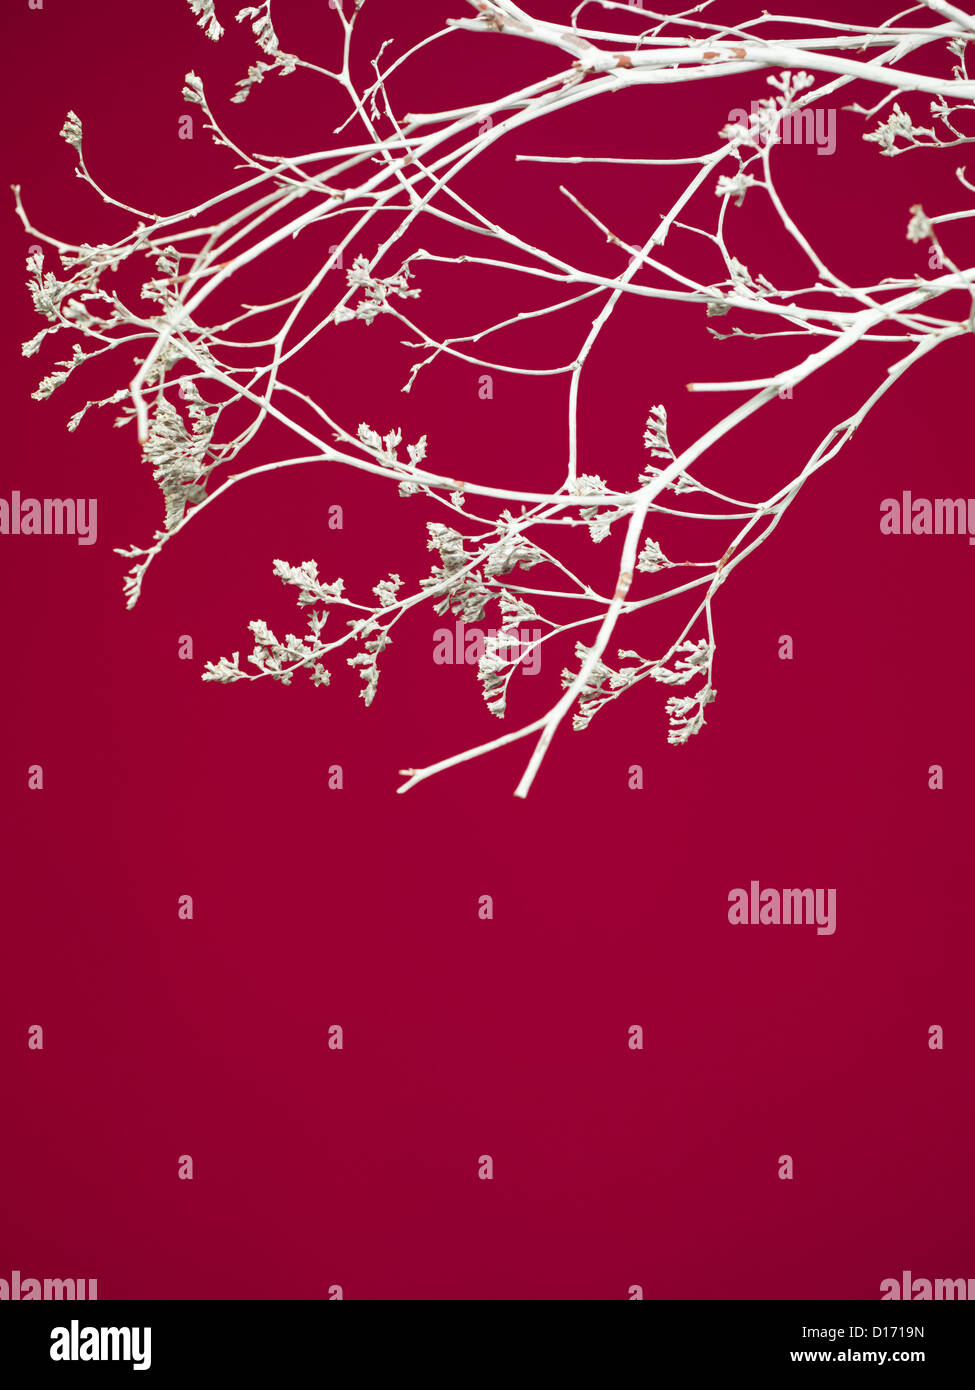 Closeup Of Interesting Curved Painted Branches With White Flowers On Stock Photo Alamy